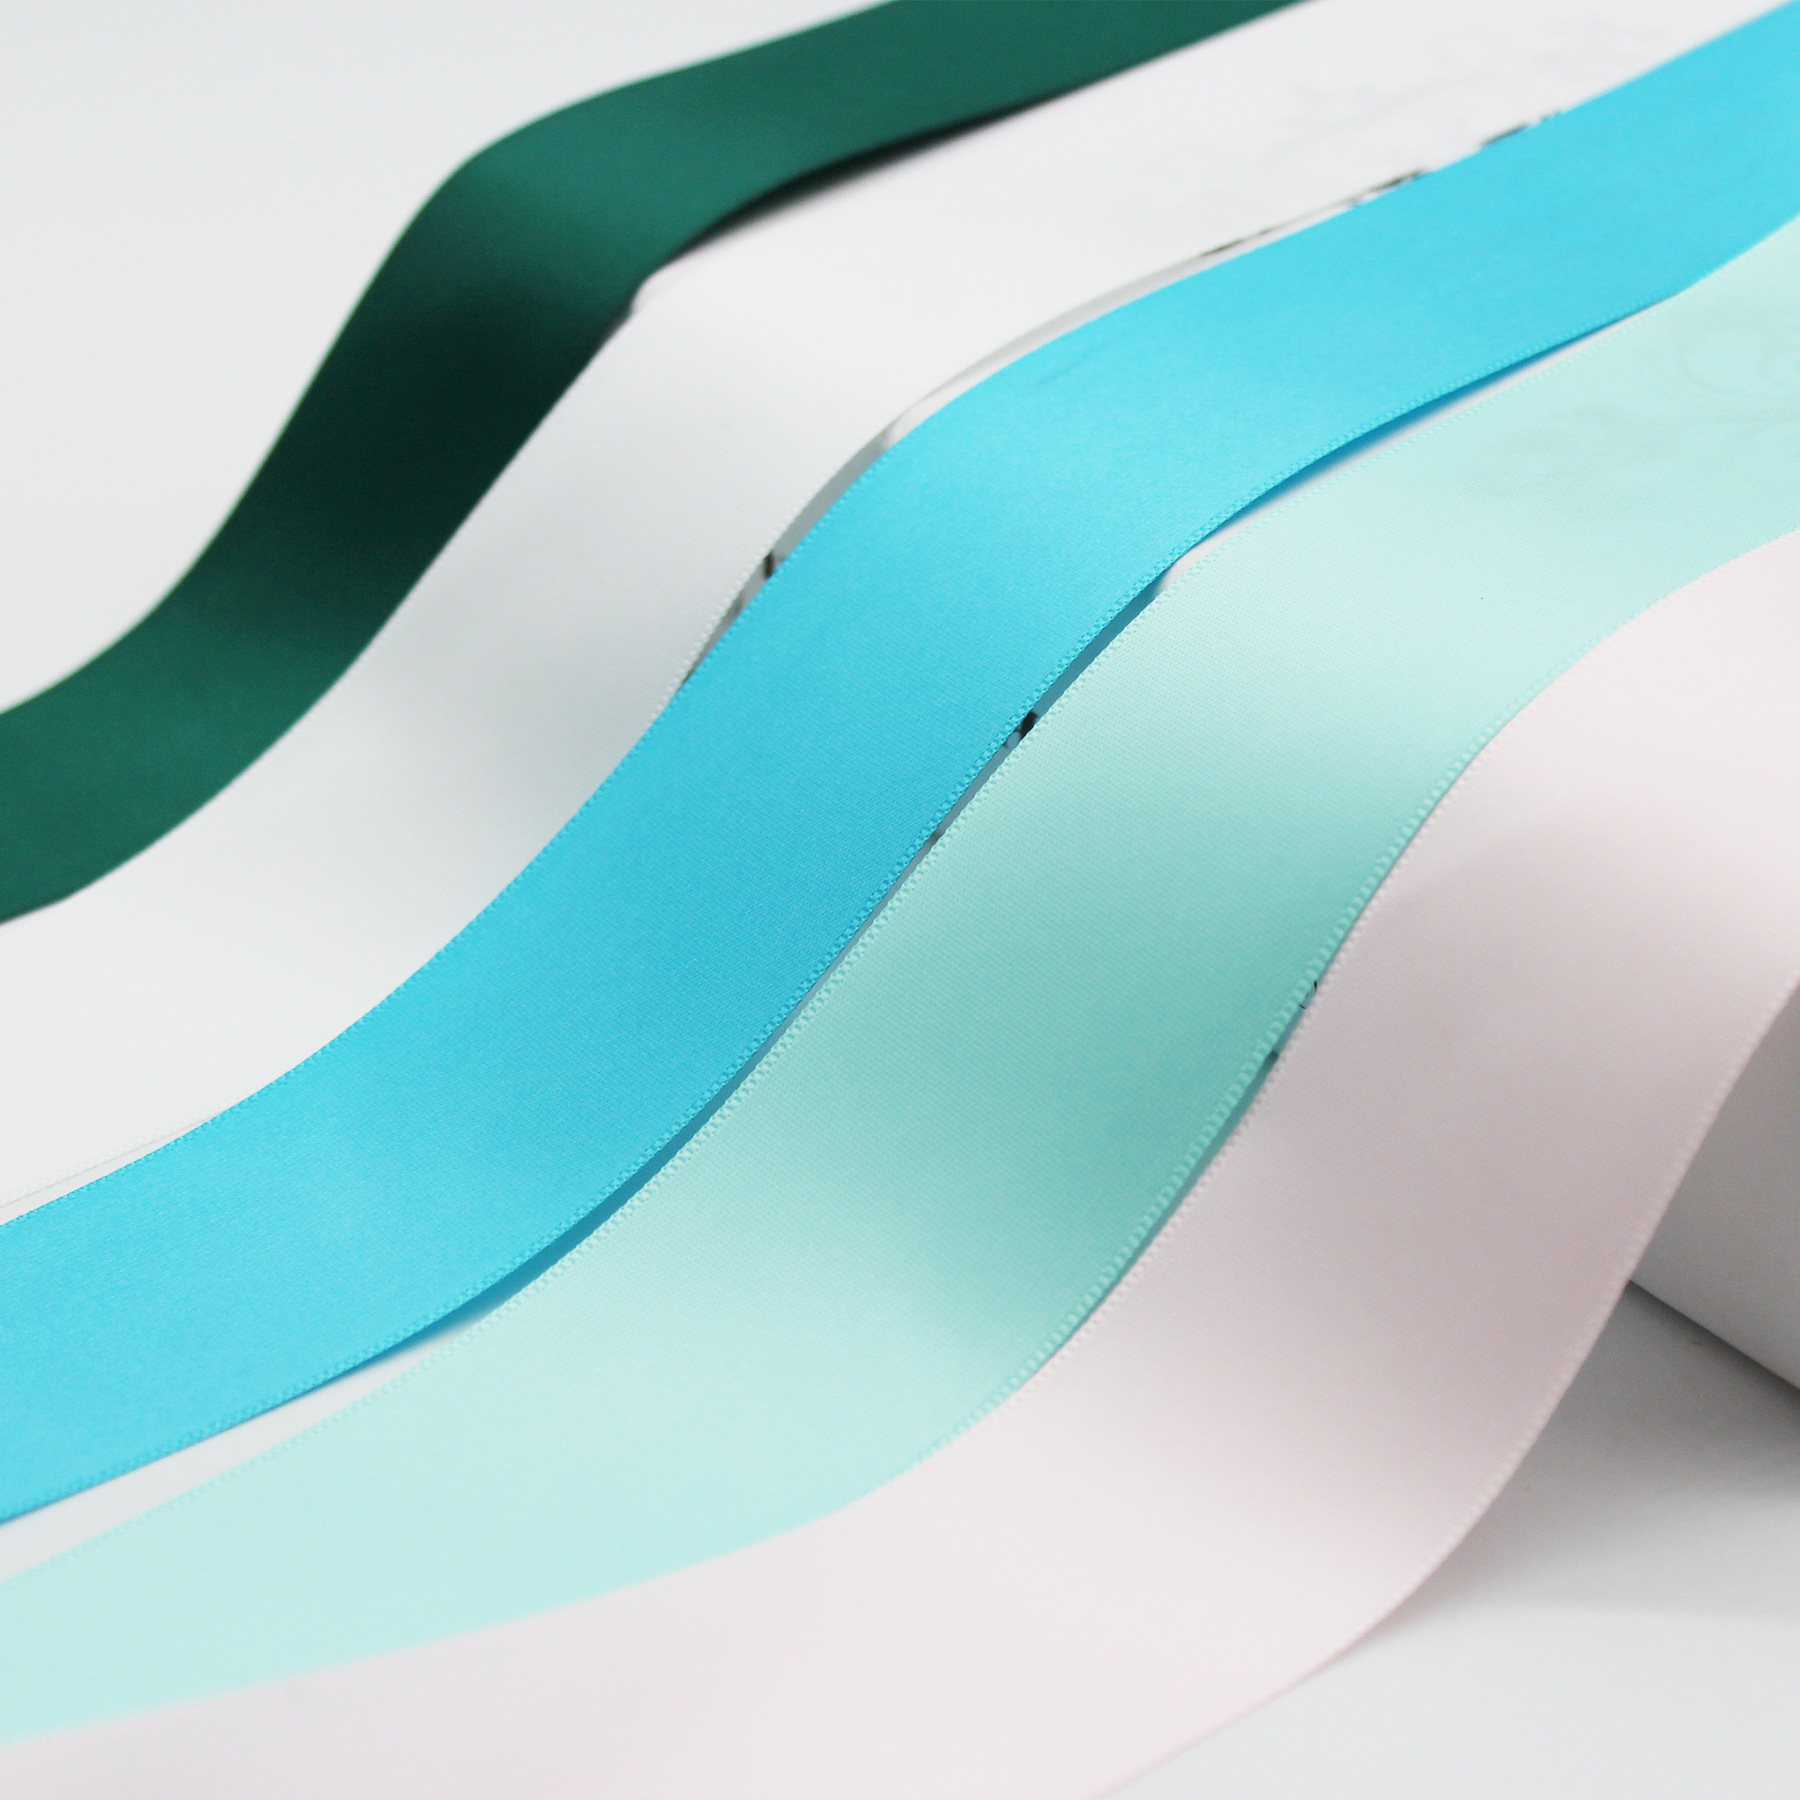 16MM 19MM 38MM Single Face Satin Ribbon 100% Polyester Webbing For DIY Present Box Wrapped Decor Accessories 5/8